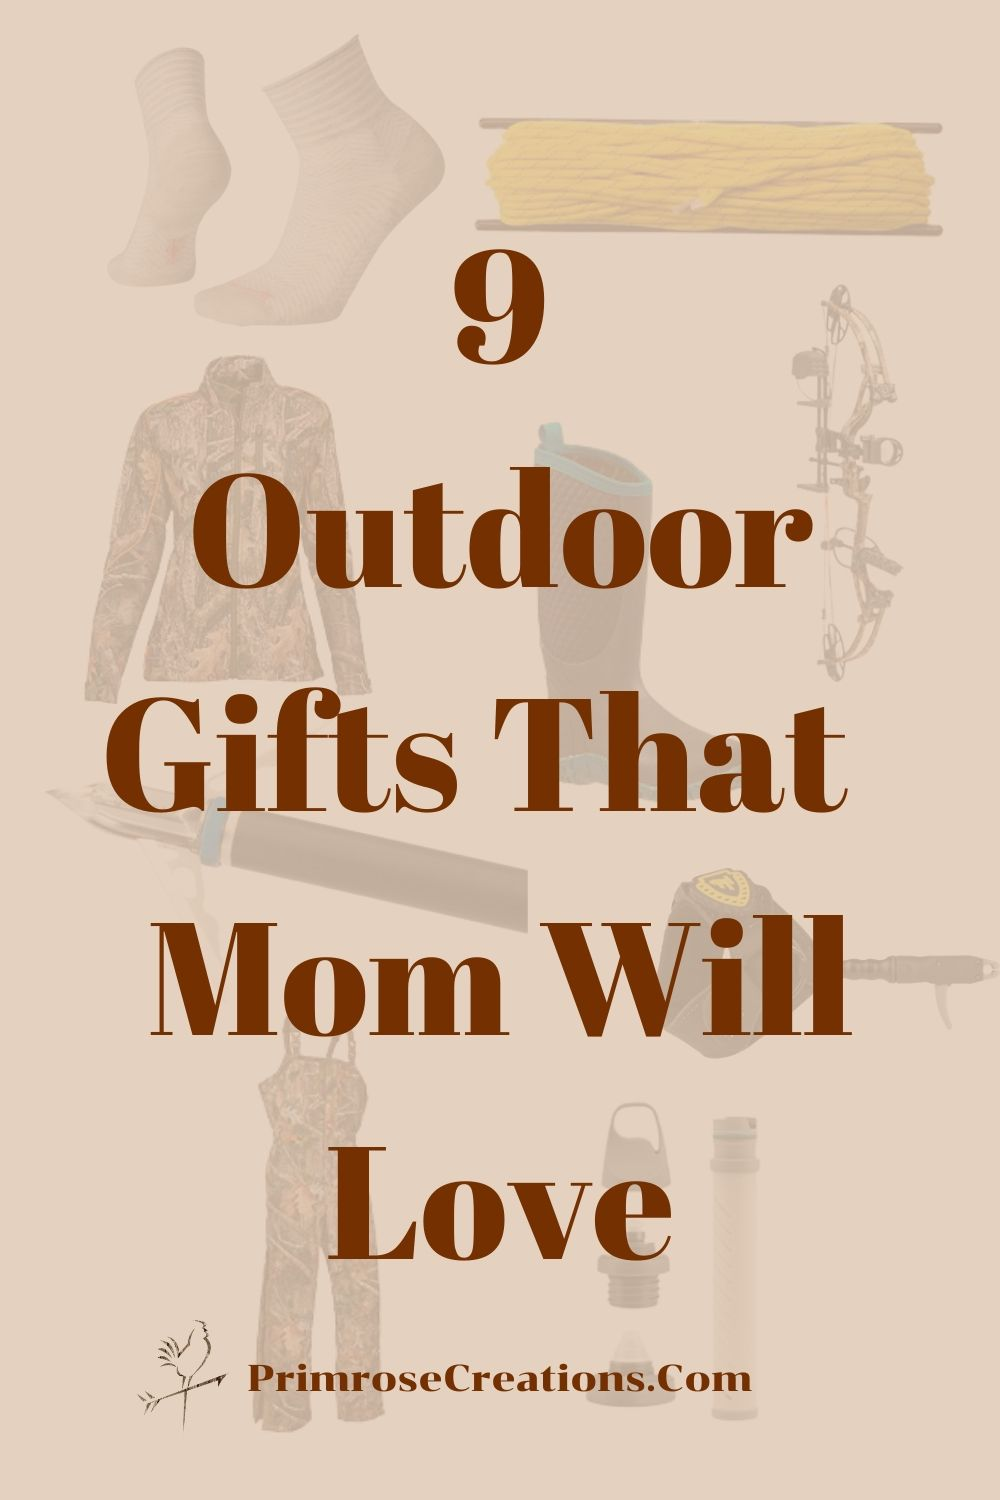 Giving gifts doesn't have to be limited to Mother's Day. From the great outdoors to the silence of self-care, we've got the ultimate list of them all! Here are our Top 9 Outdoor Gifts for mom this spring.